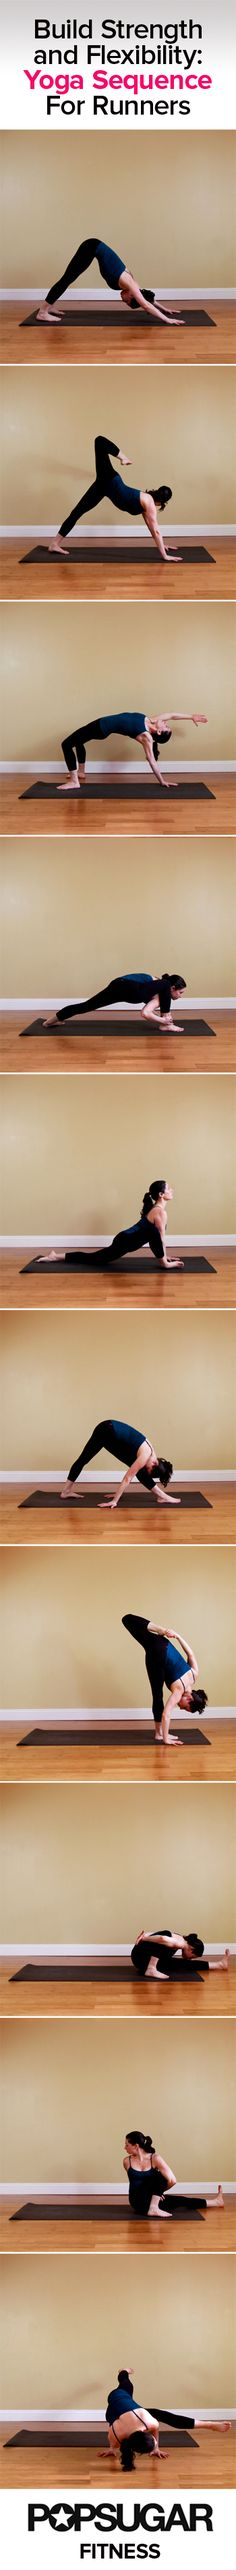 Yoga Sequence For Runners | Poster